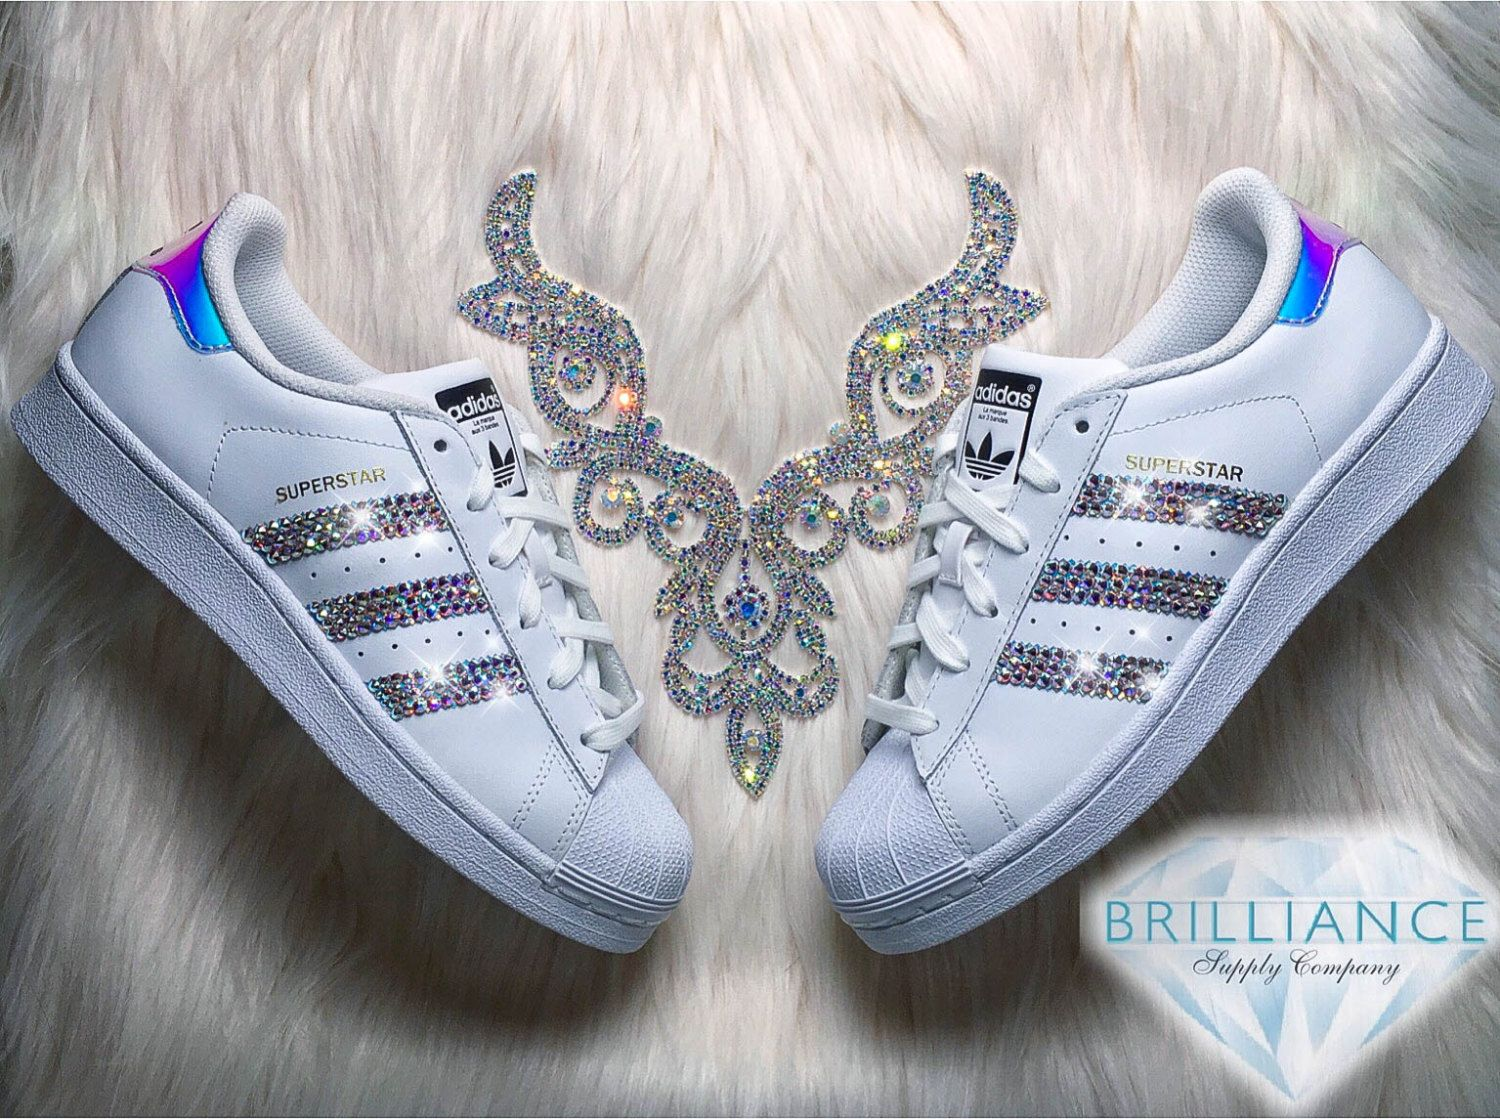 Adidas Originals Superstar Shoes Encrusted with Hundreds of Swarovski®  Premium Aurora Borealis Crystals!